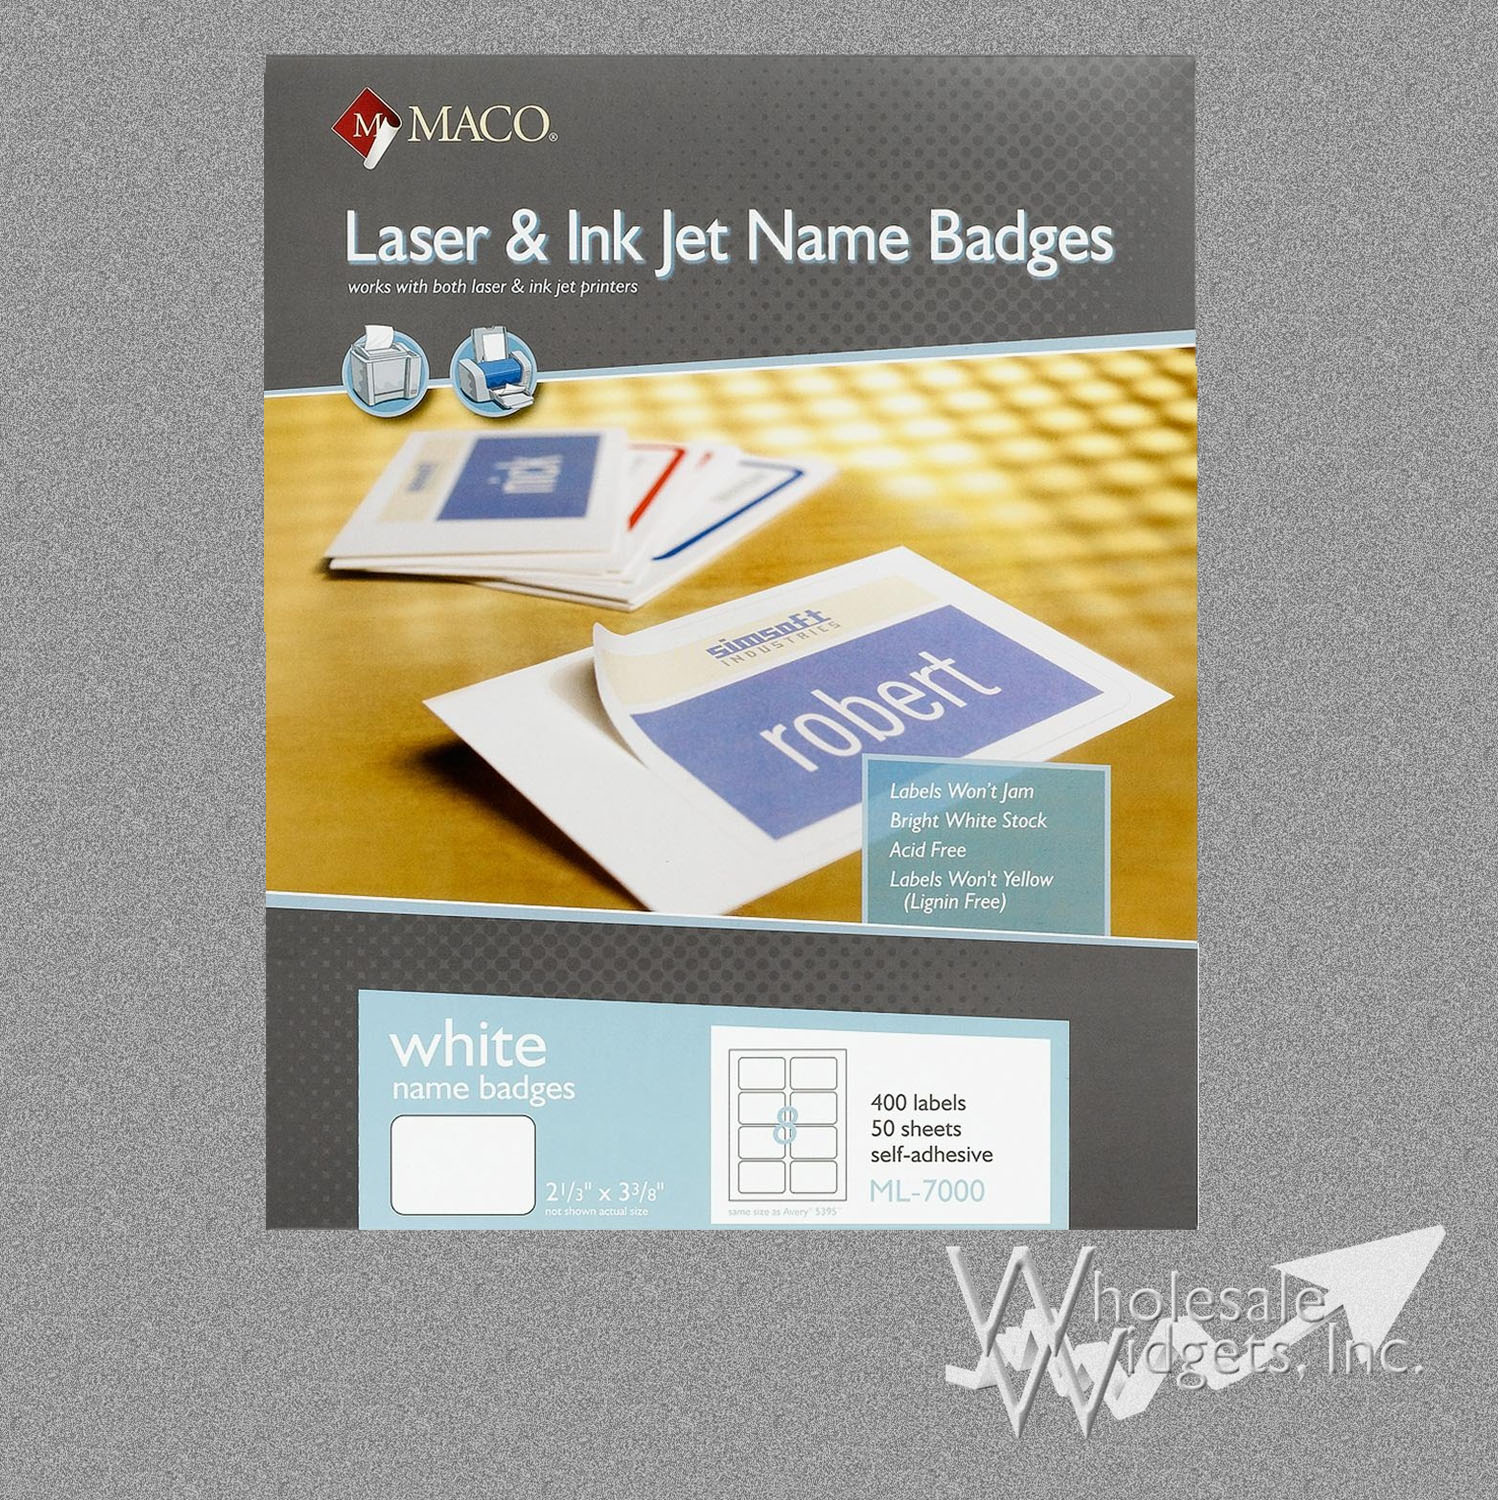 maco ml7000 badge labels for use in 2 1 3 x 3 3 8 name badge labels